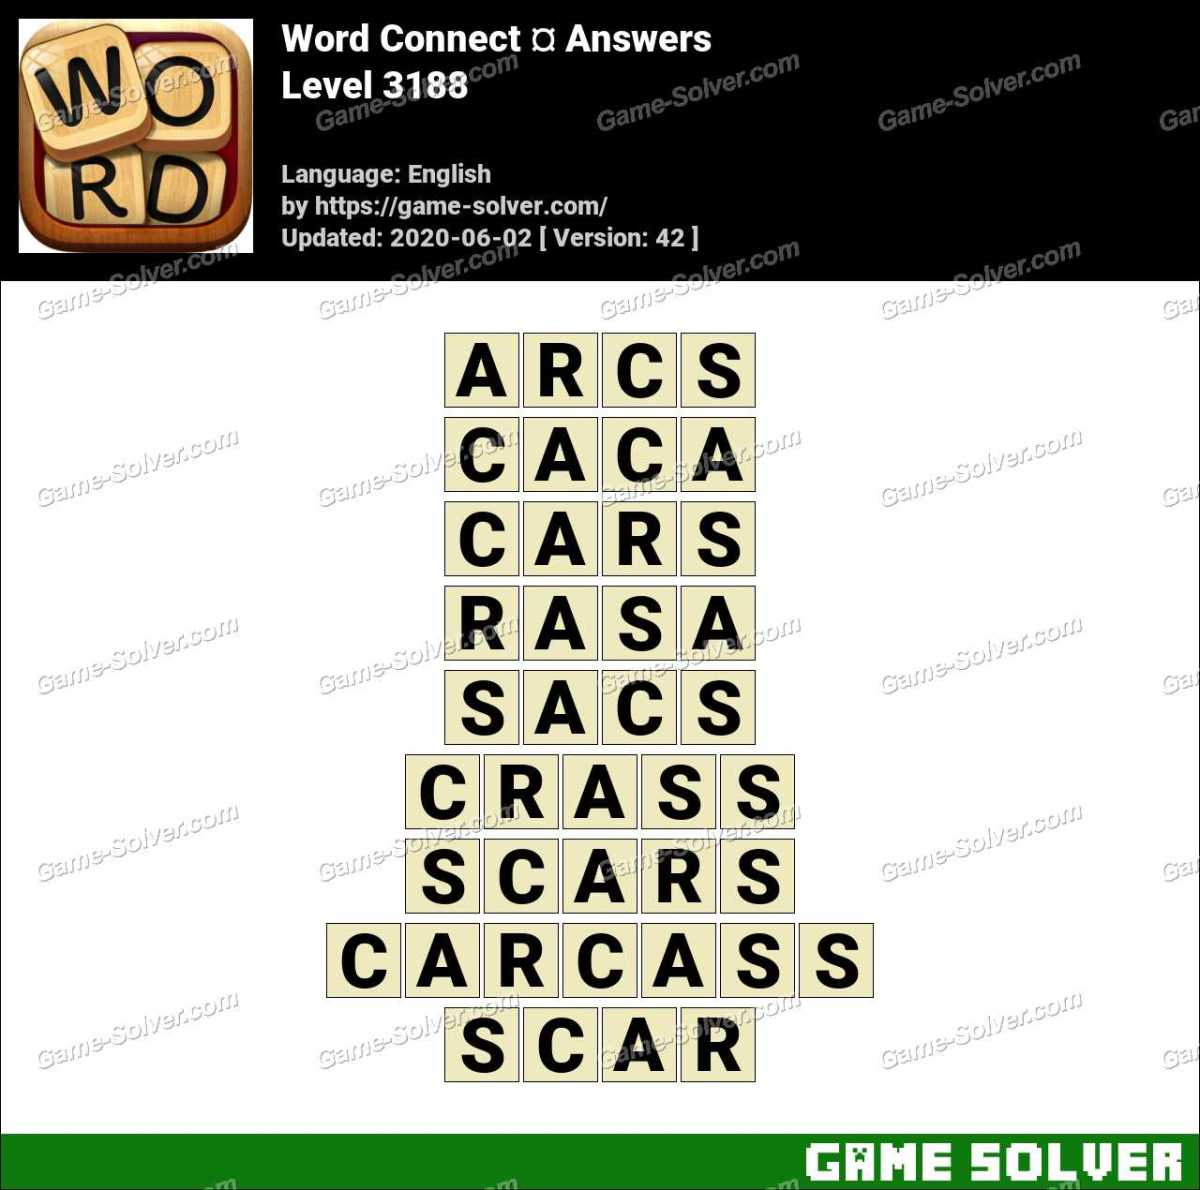 Word Connect Level 3188 Answers